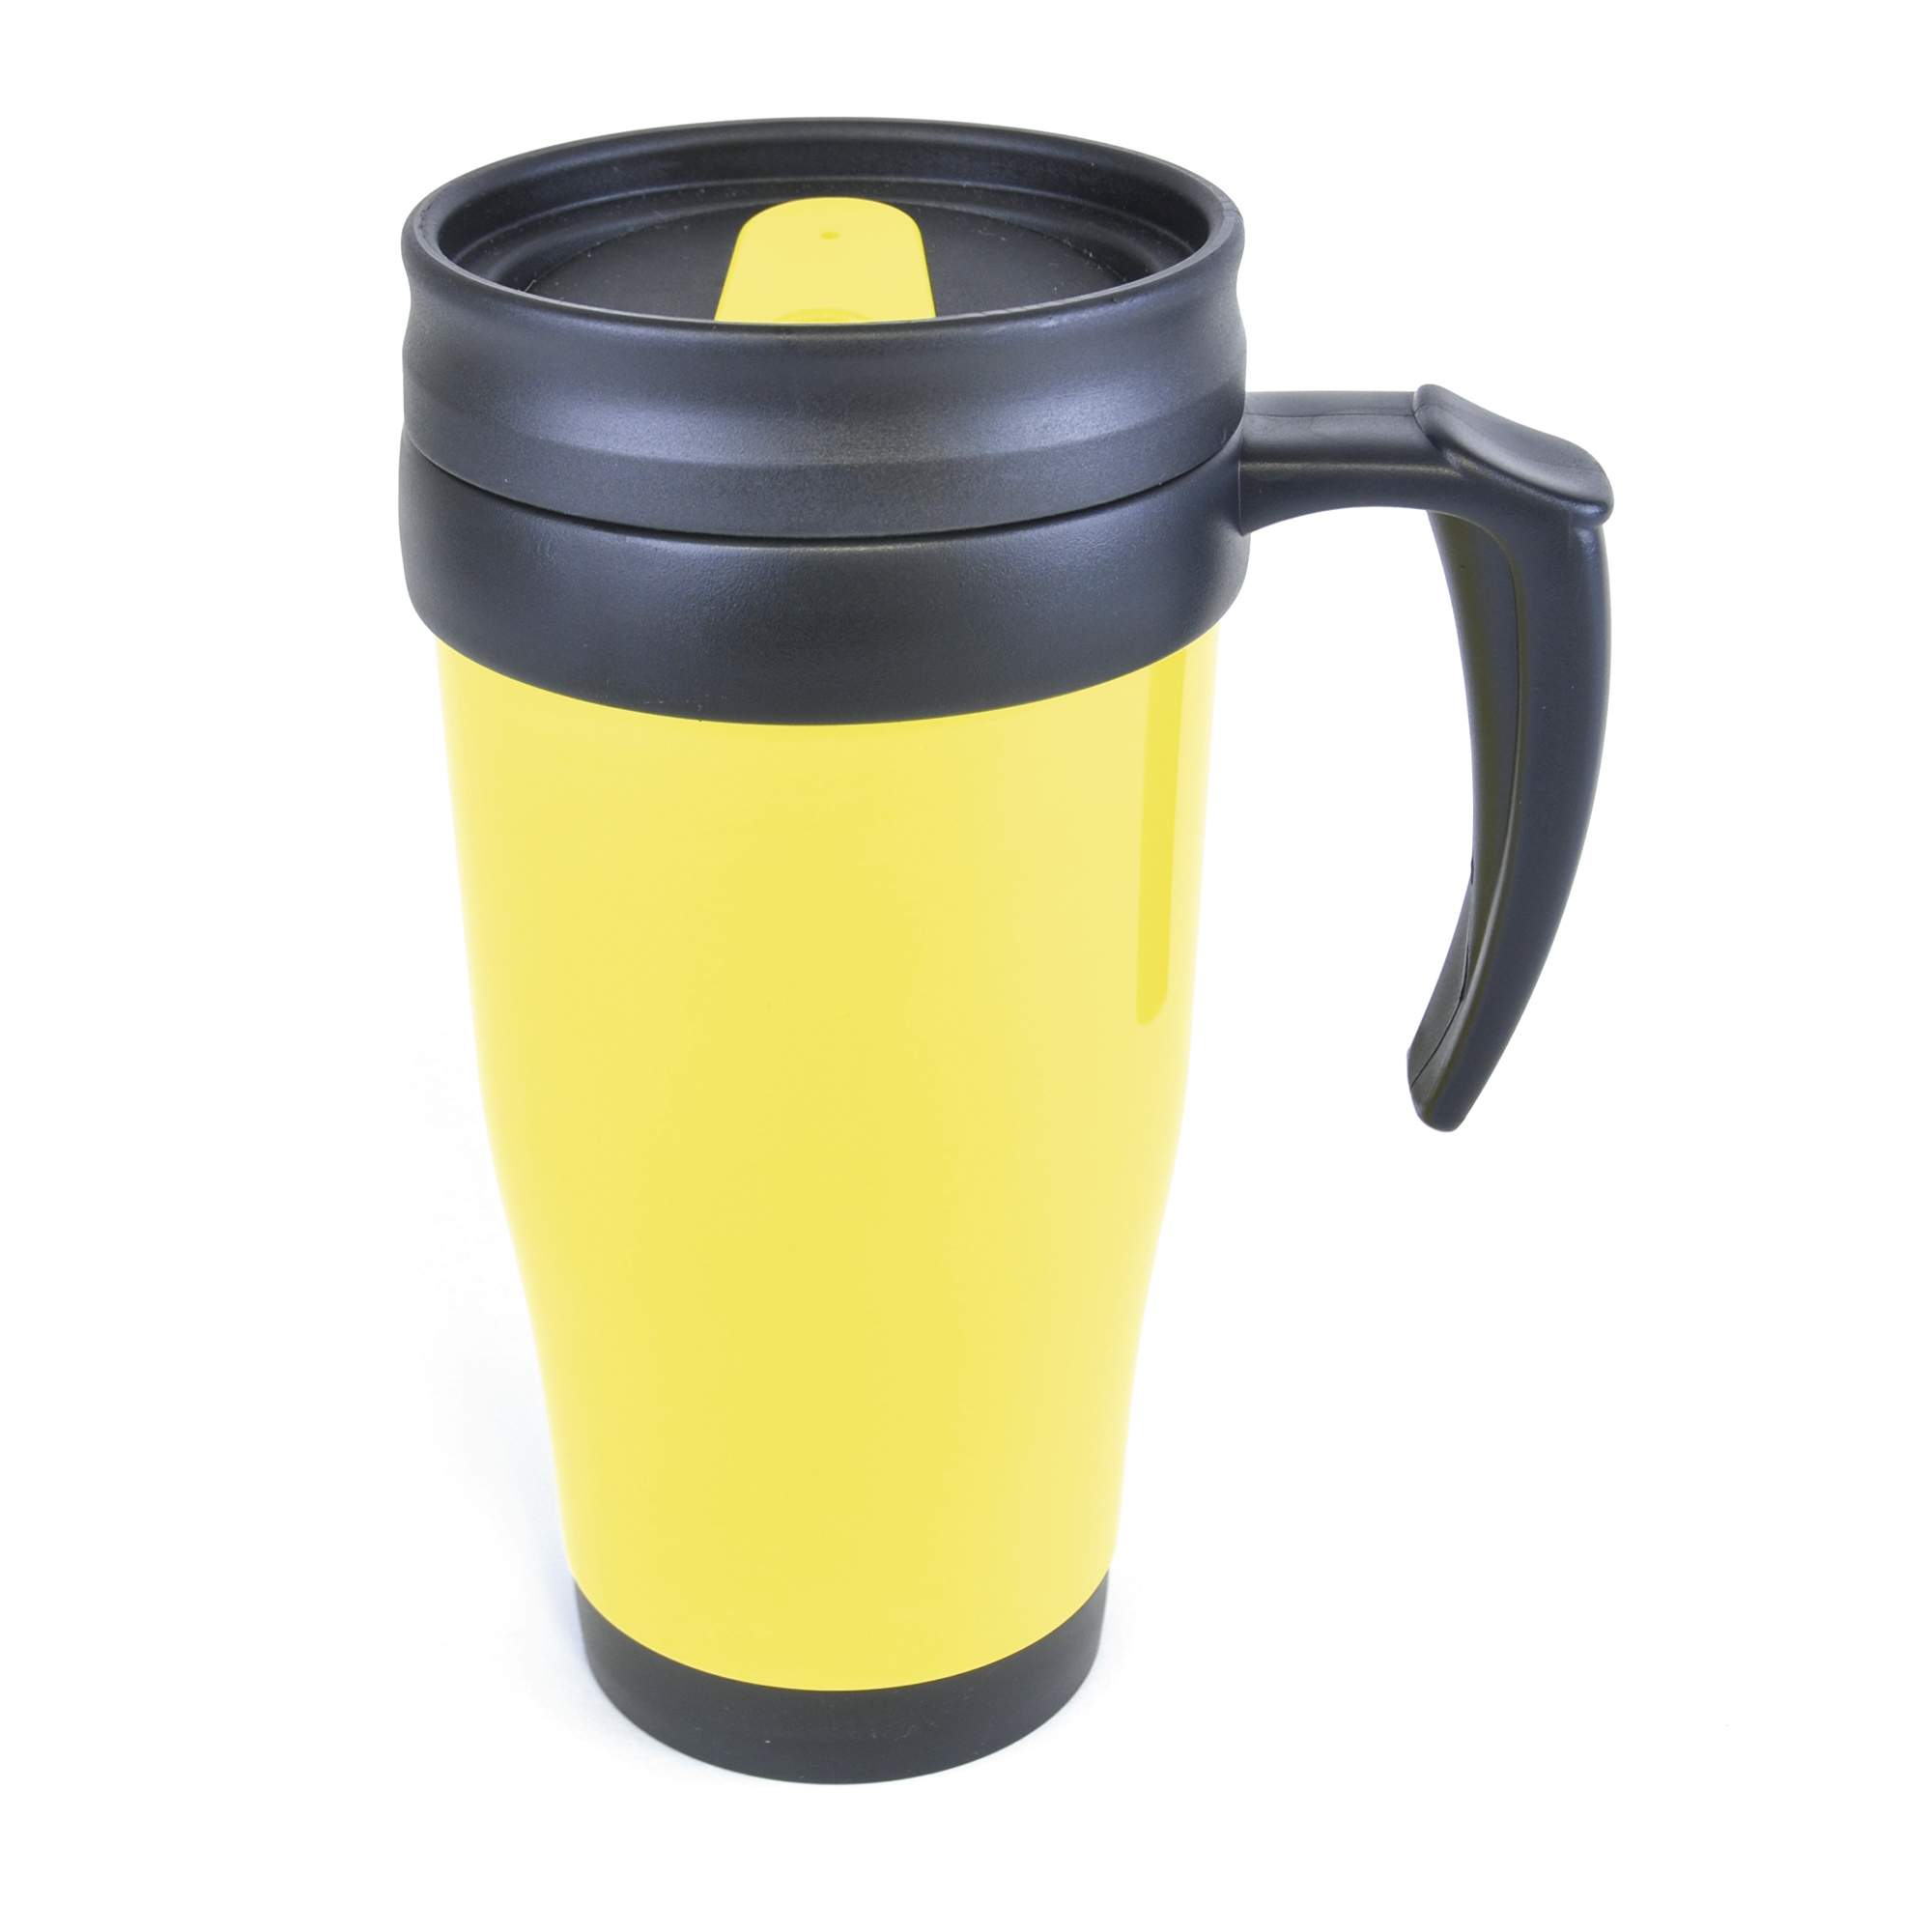 THERMAL TRAVEL MUG TEE COFFEE HOT DRINK CUP HANDLE DOUBLE WALLED INSULATED 400ml   eBay